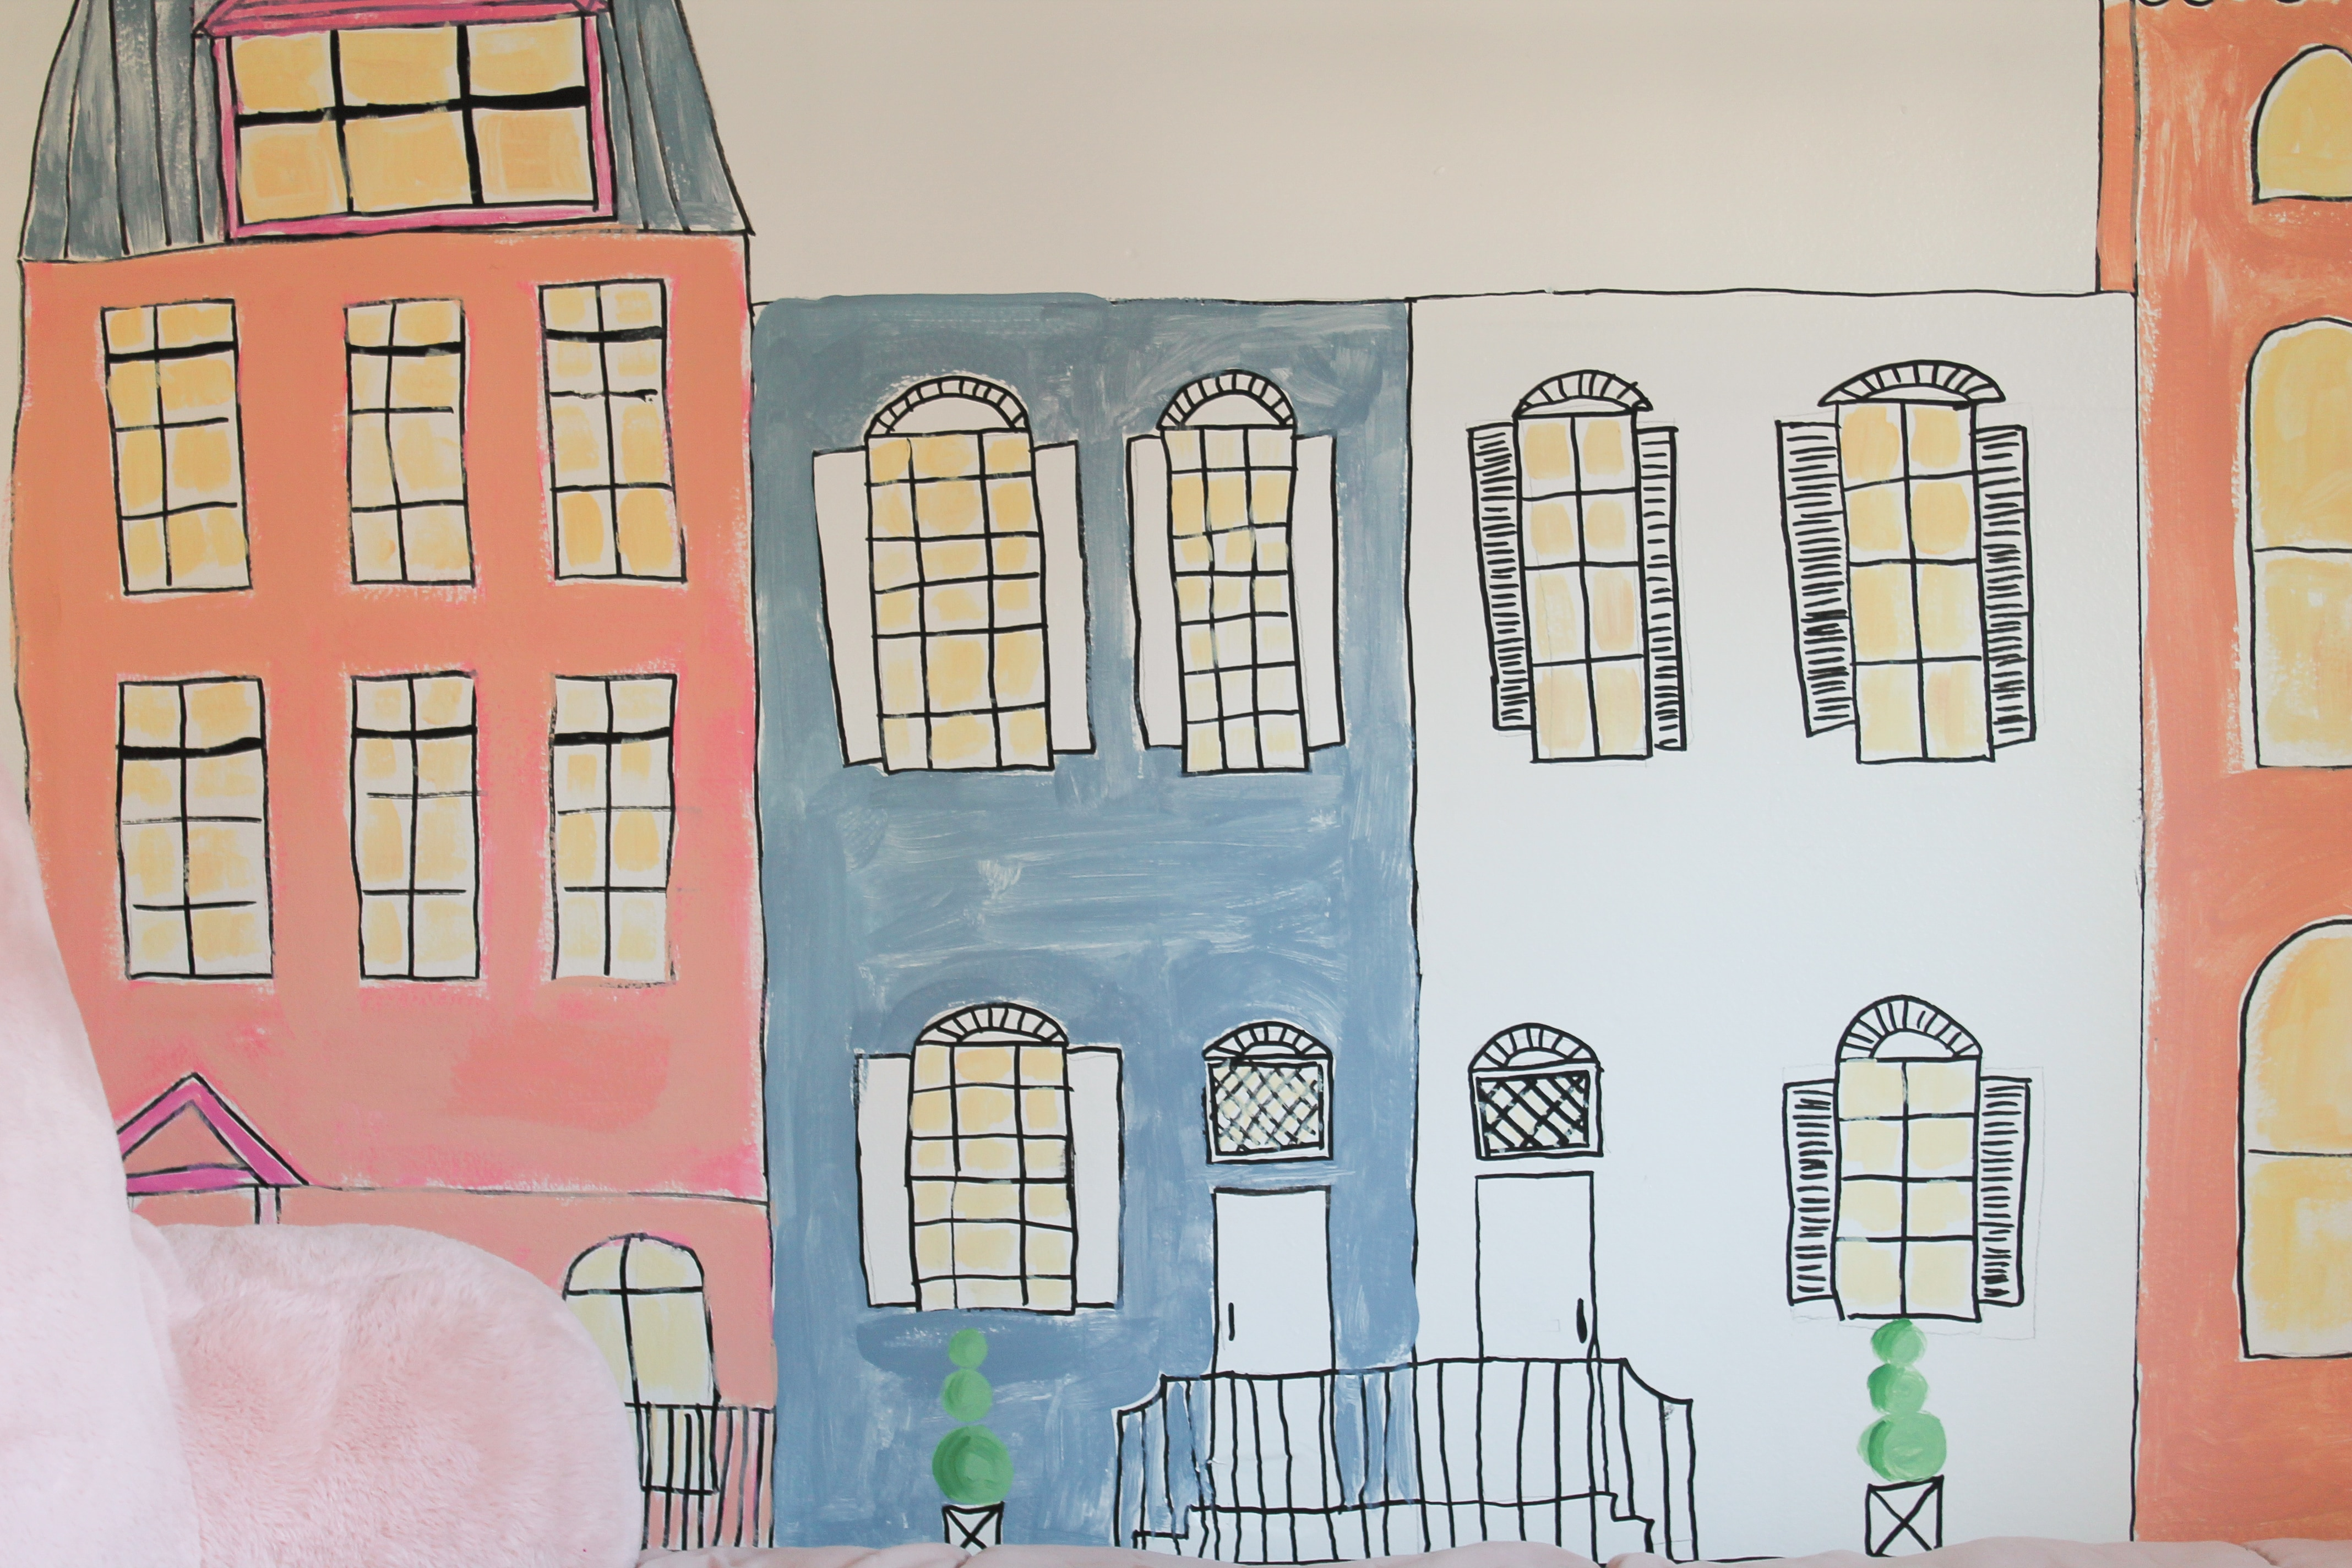 How to Paint a Wall Mural: The DIY Step by Step Guide